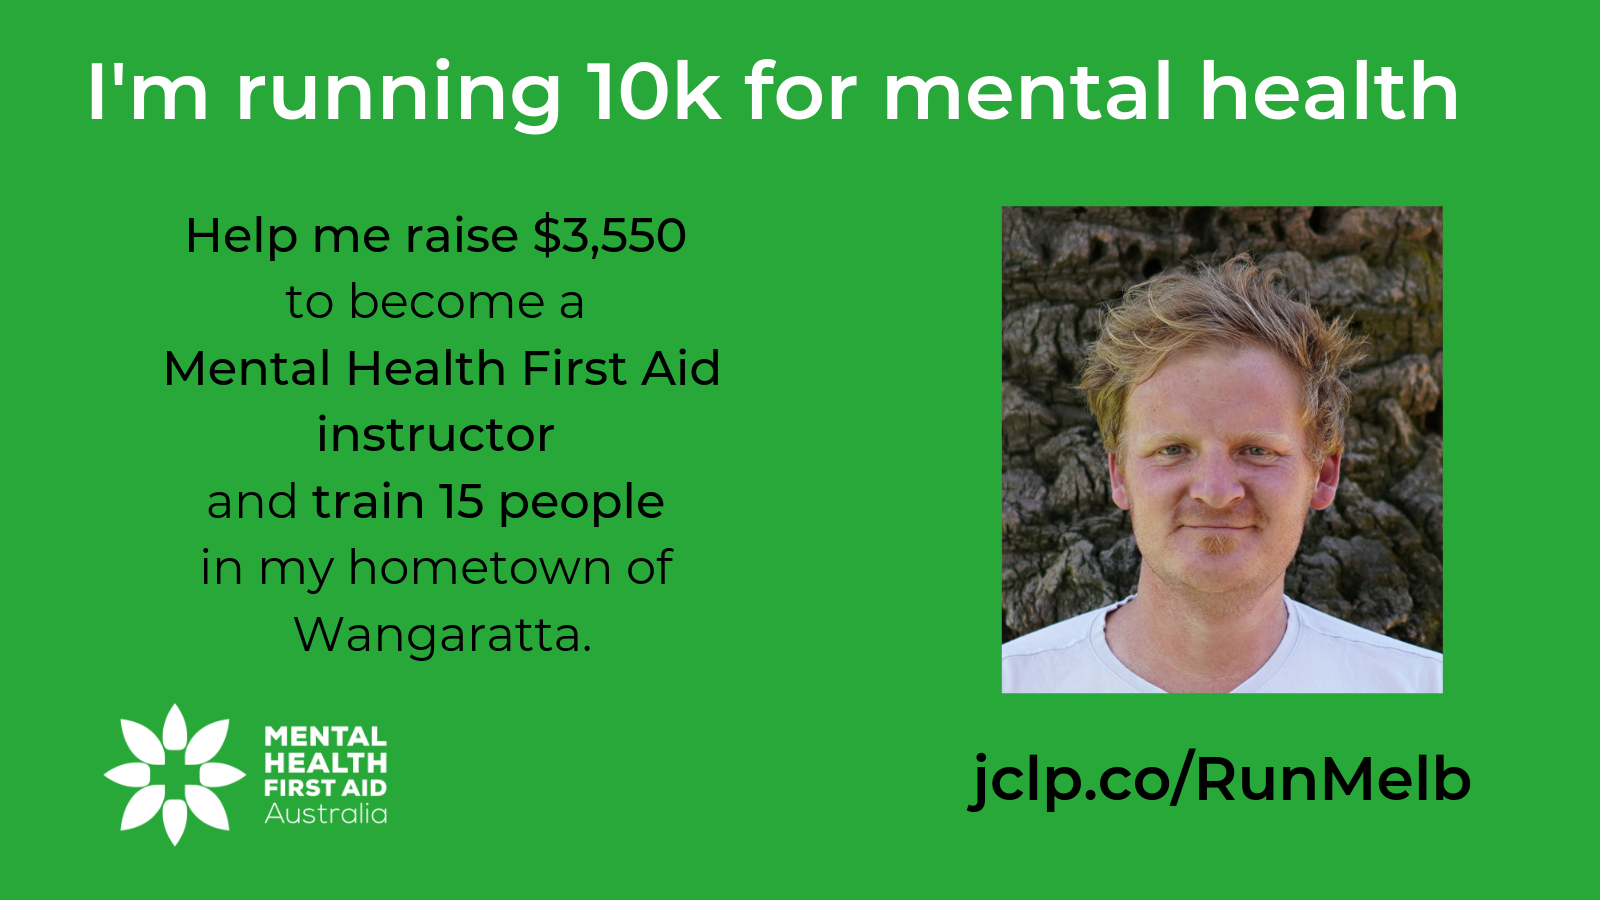 Help me raise $3,550 to become a Mental Health First Aid instructor and train 15 people in my hometown of Wangaratta.